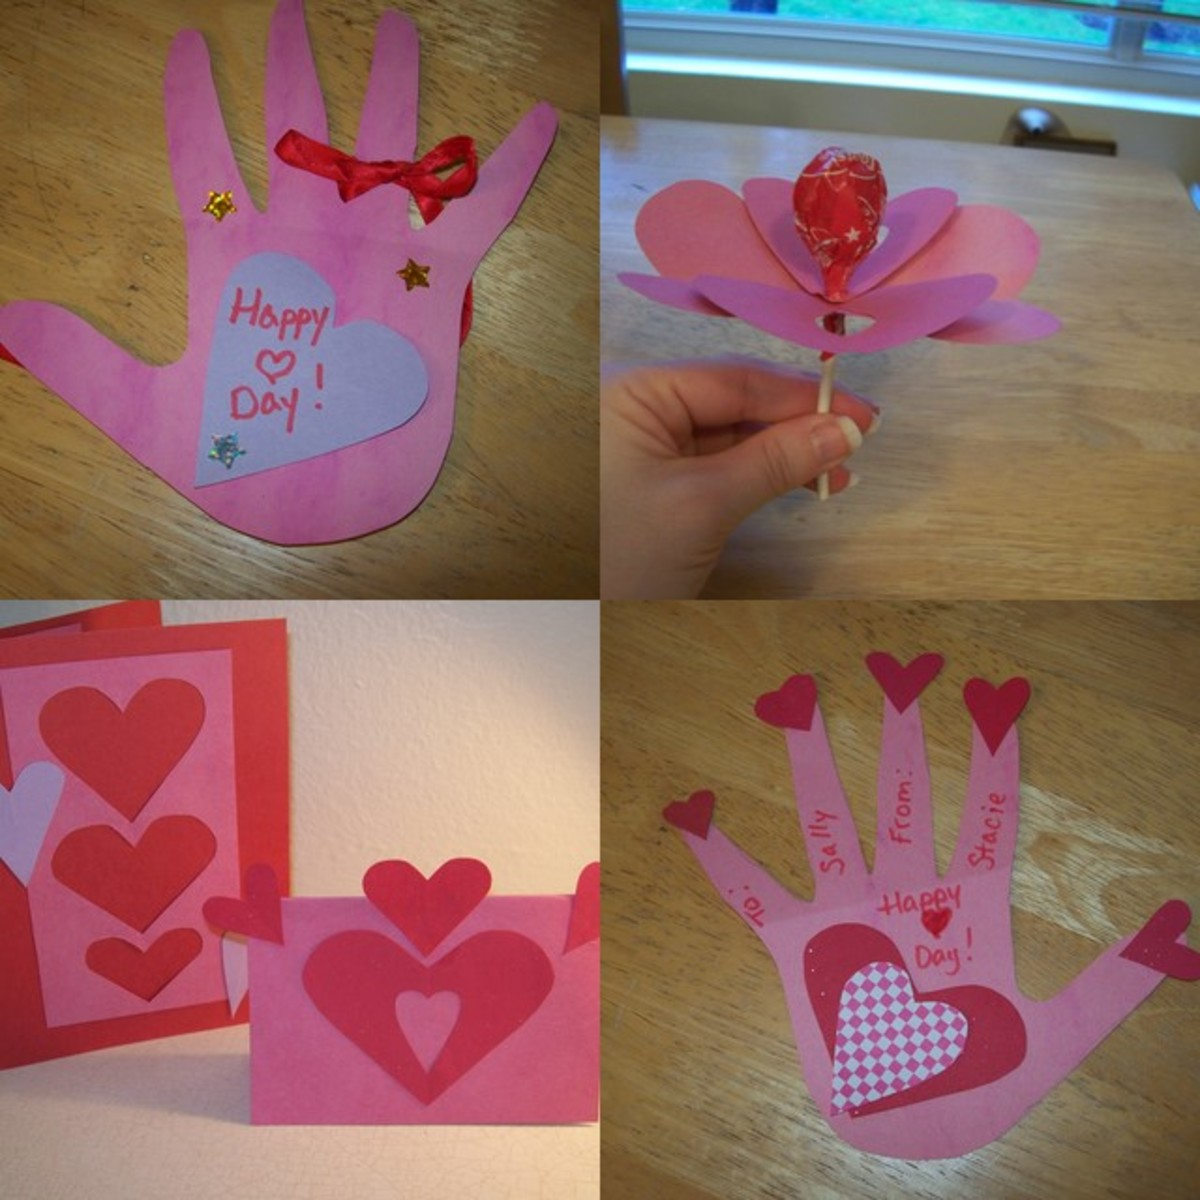 Homemade Valentine's Cards: A Fun Project for Kids